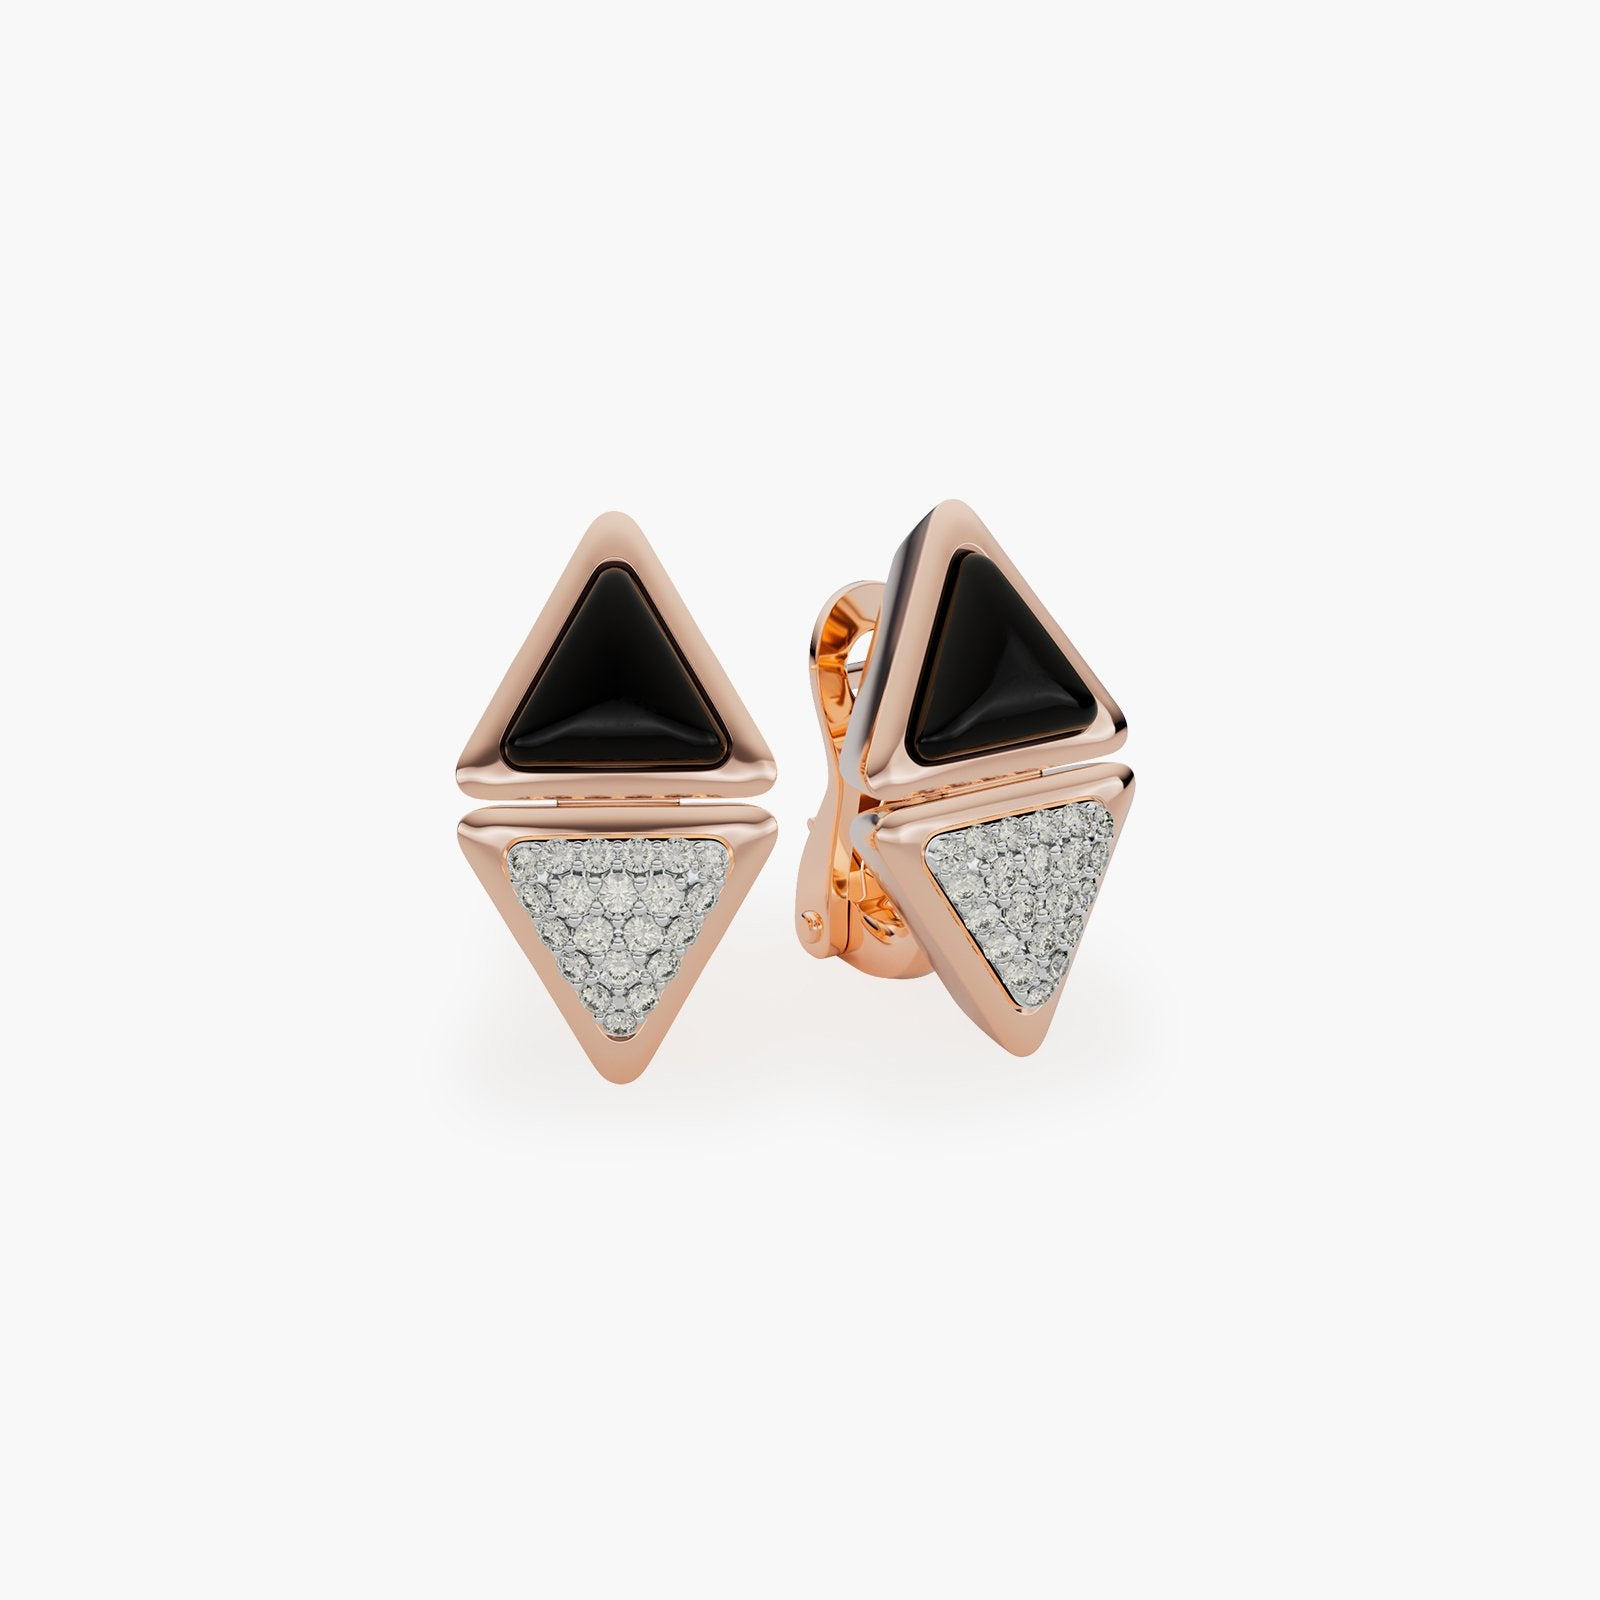 Earrings Short Mirror Exquisite Rose Gold Onix and Diamonds